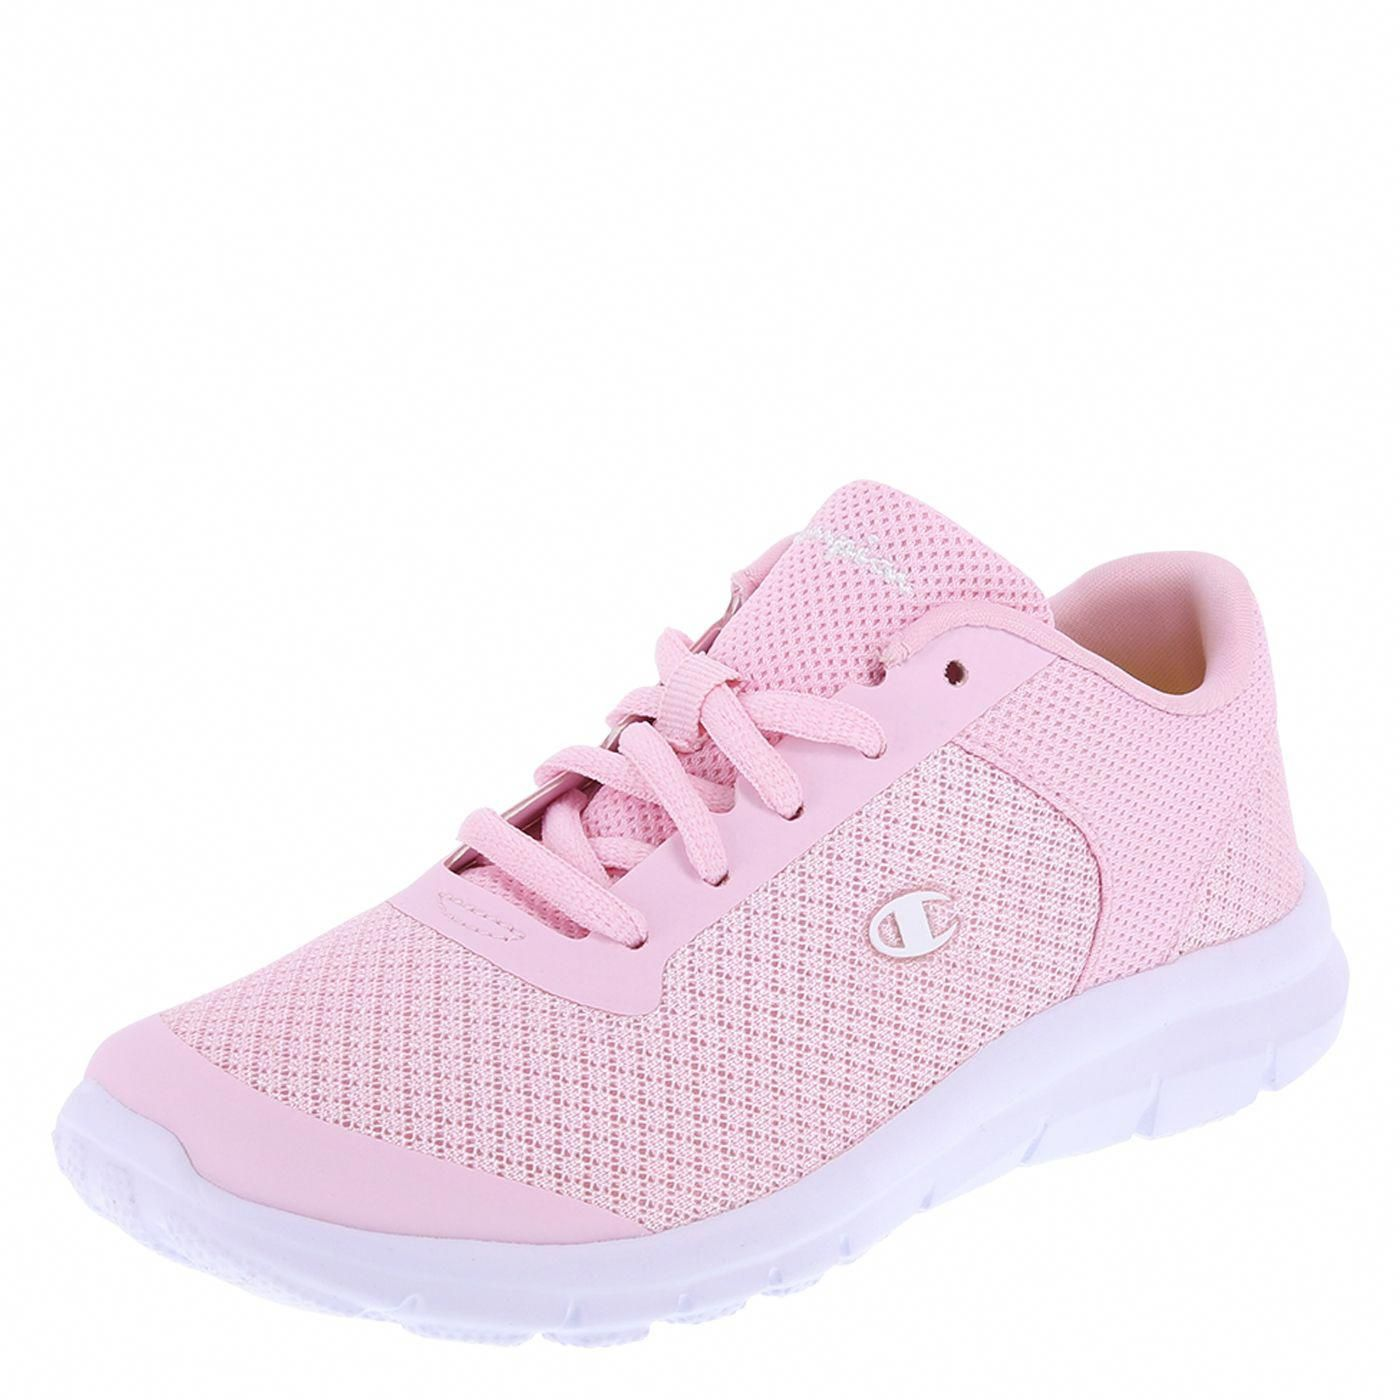 8207223b07ee7 Champion performance girls trainer shoe payless jpg 1400x1400 Payless  champion shoes high